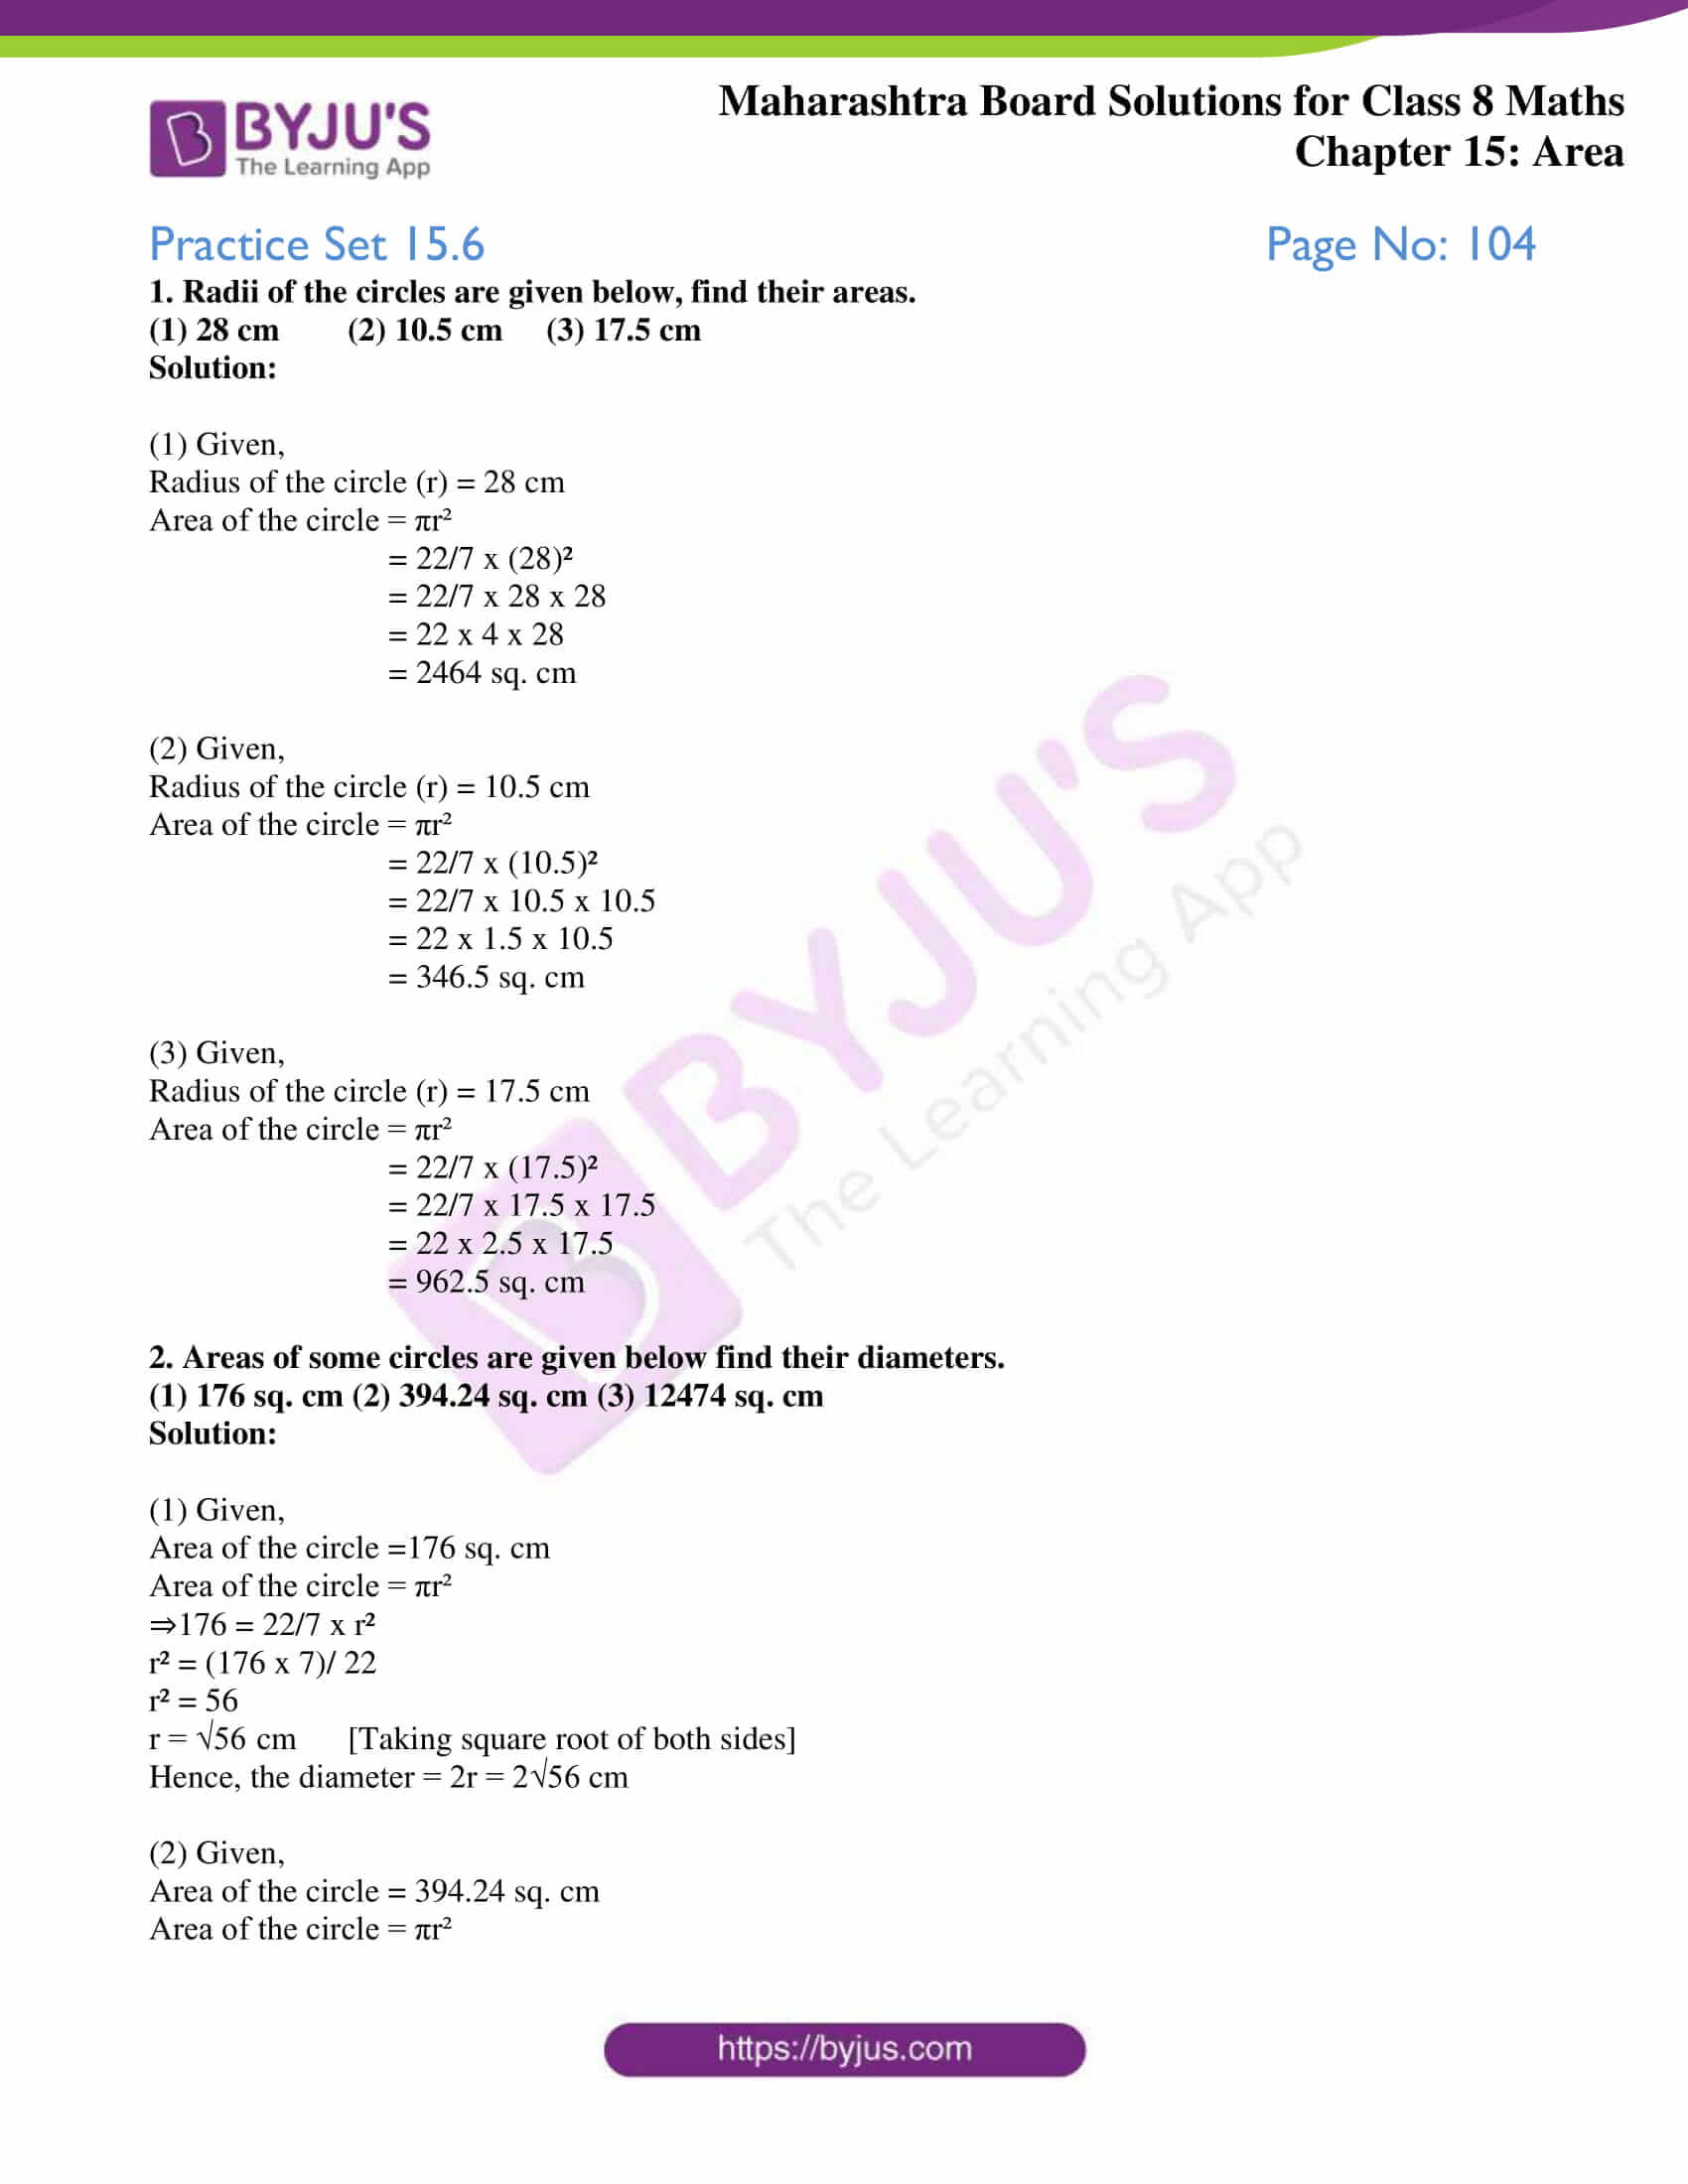 msbshse sol for class 8 maths chapter 15 11